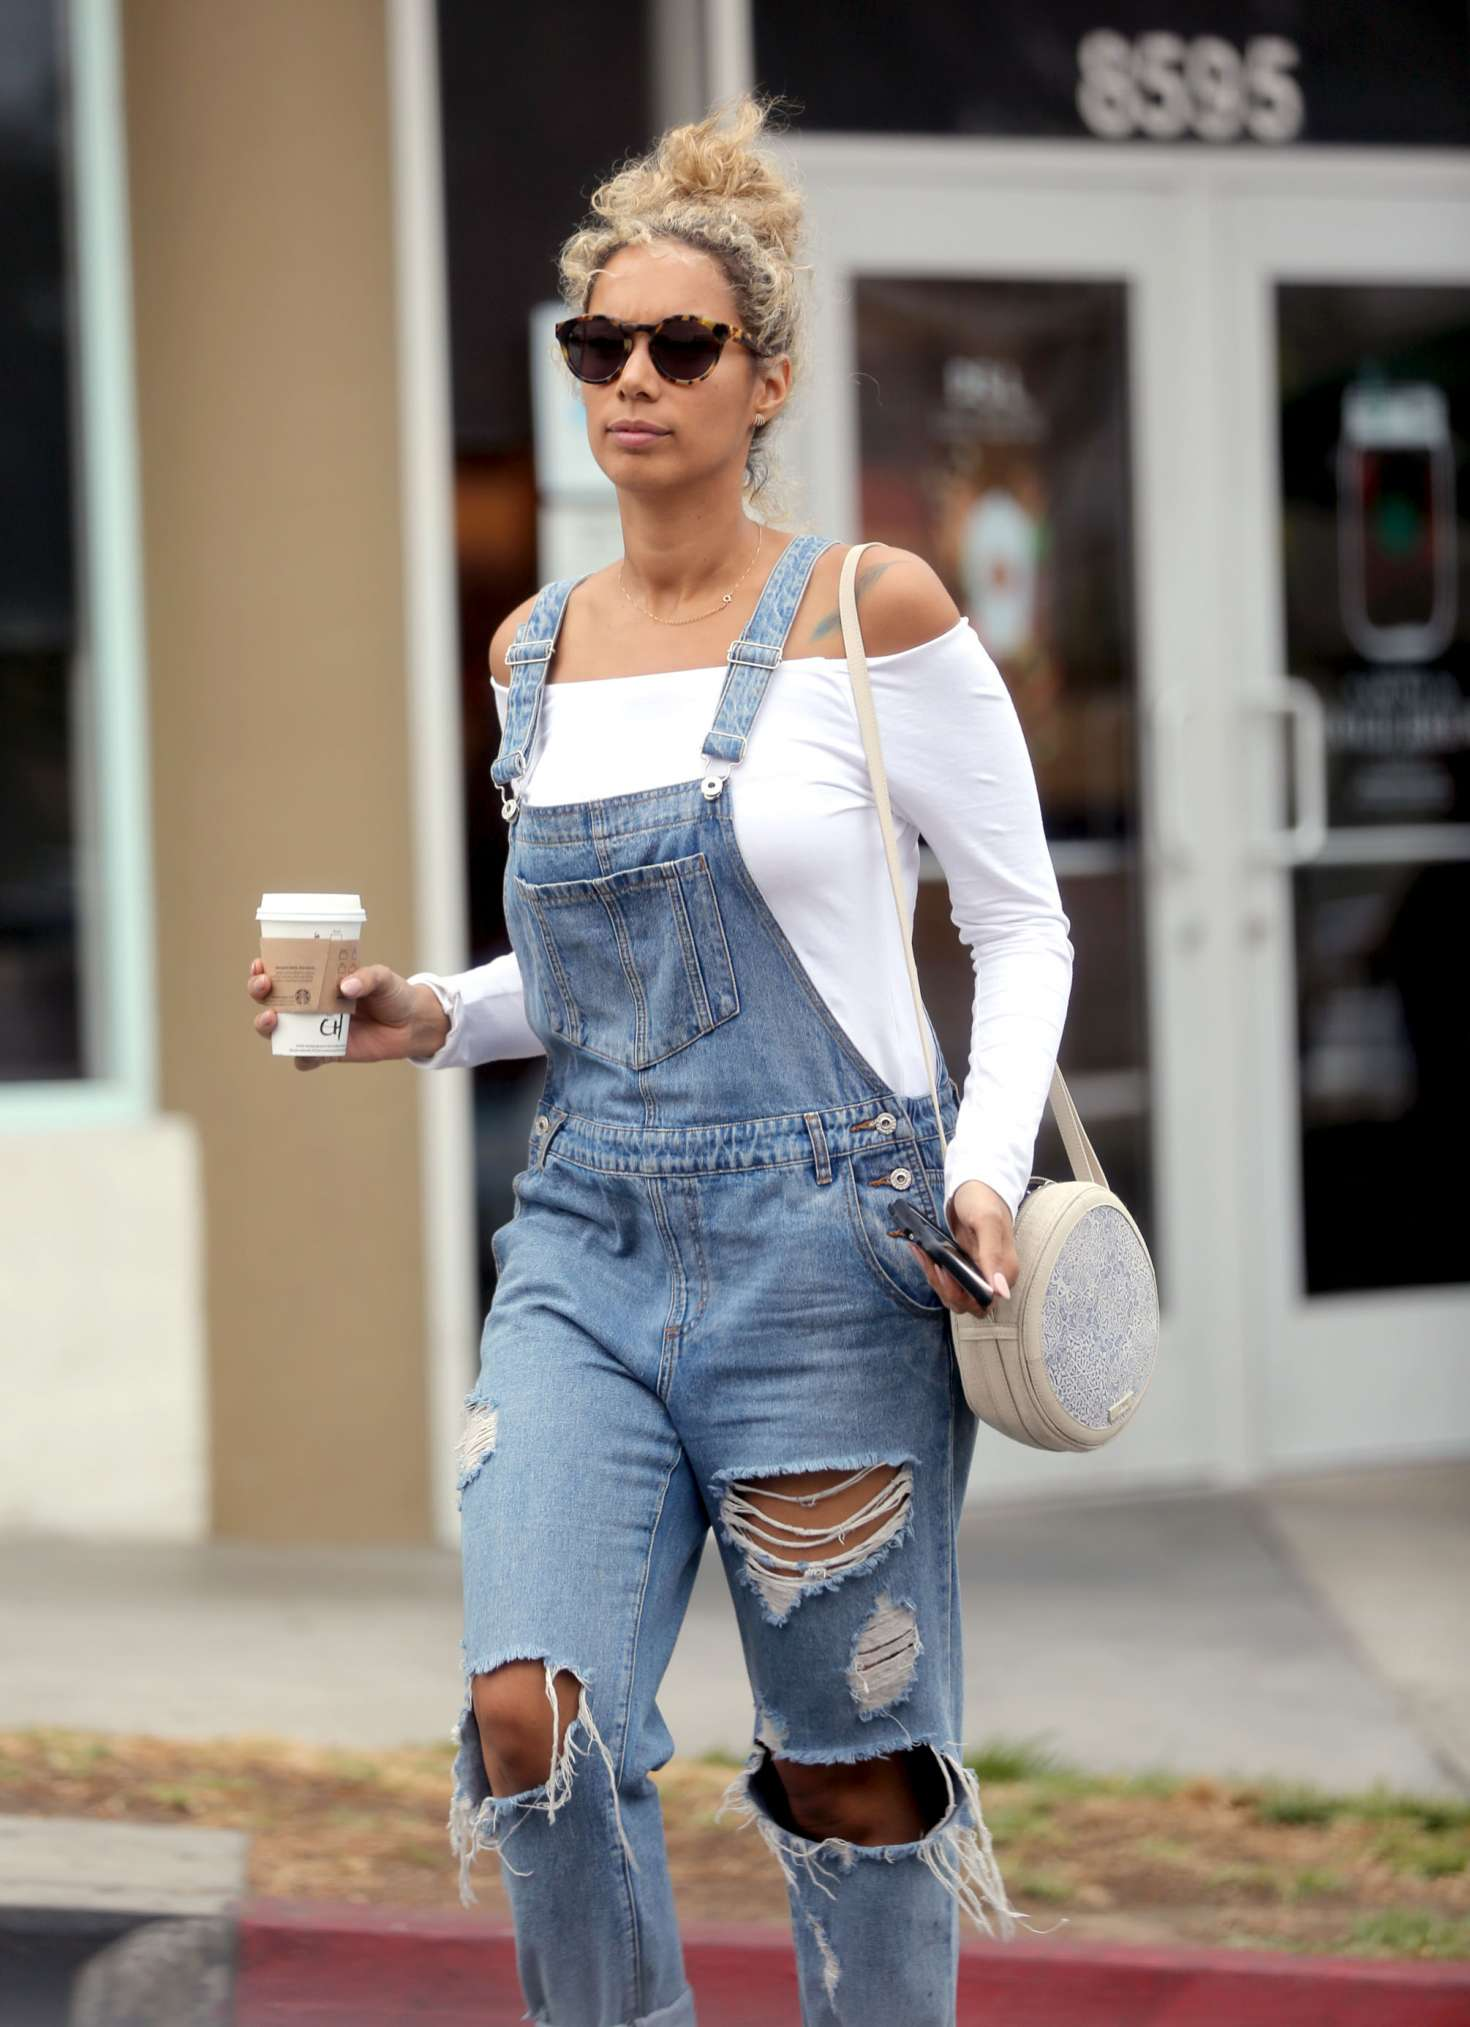 Leona Lewis 2016 : Leona Lewis out shopping in Los Angeles -06